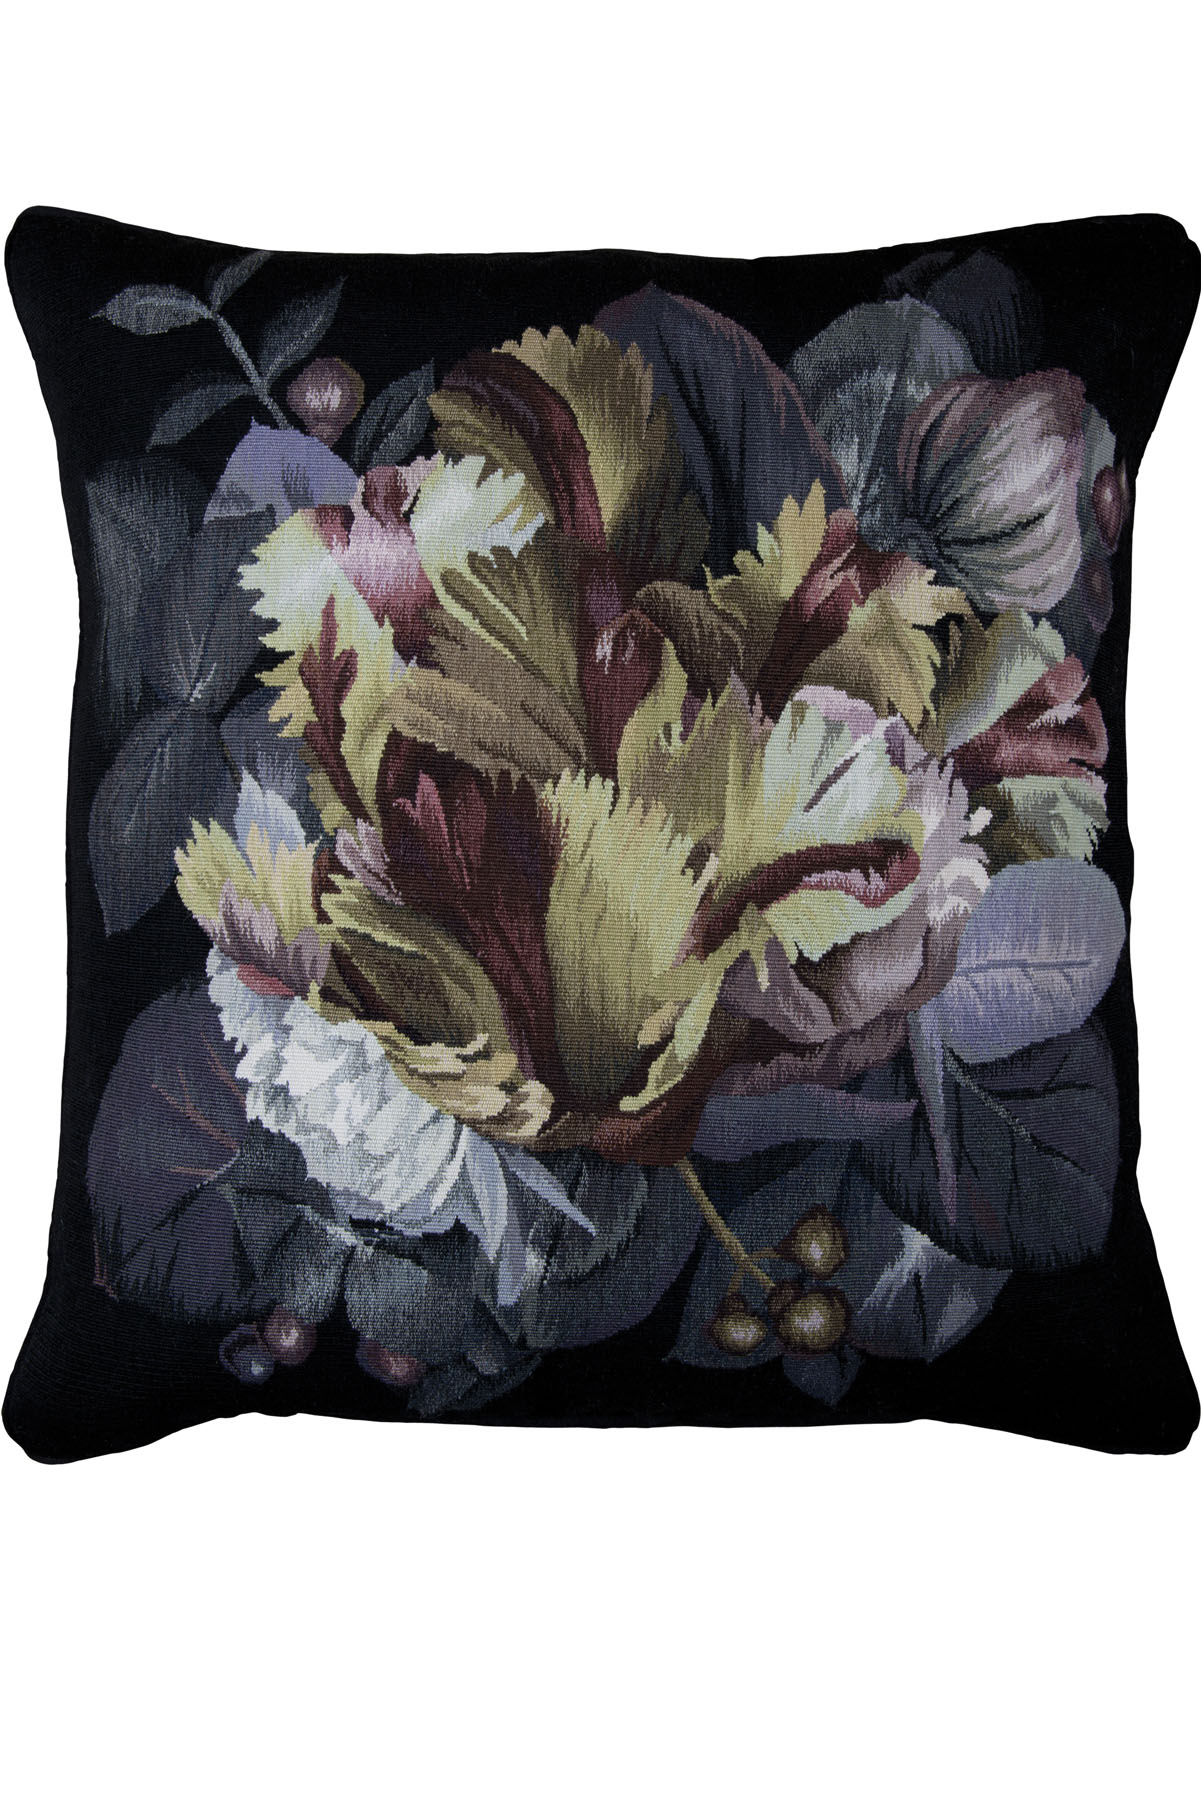 Alexander McQueen Chiaroscuro Cushion Black Wool by The Rug Company